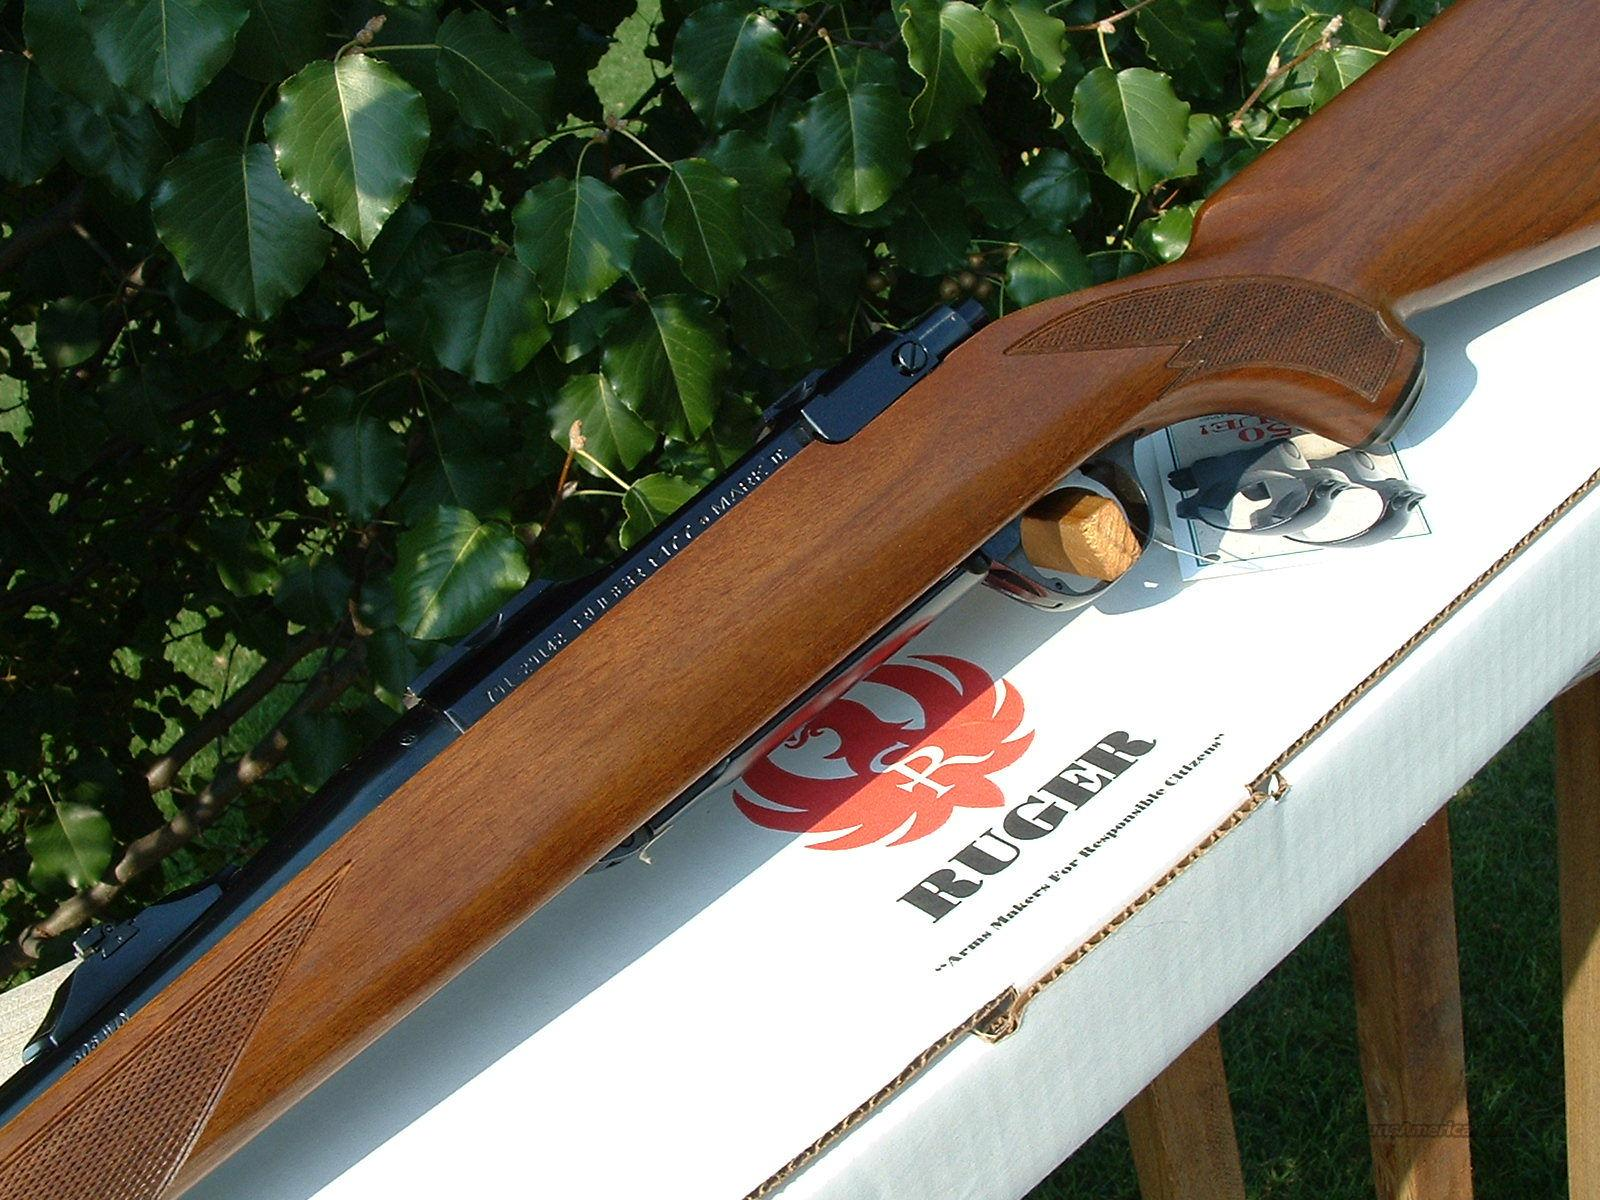 Ruger M77 RSI MKII Mannlicher 308 Win.   New!   LAYAWAY  Guns > Rifles > Ruger Rifles